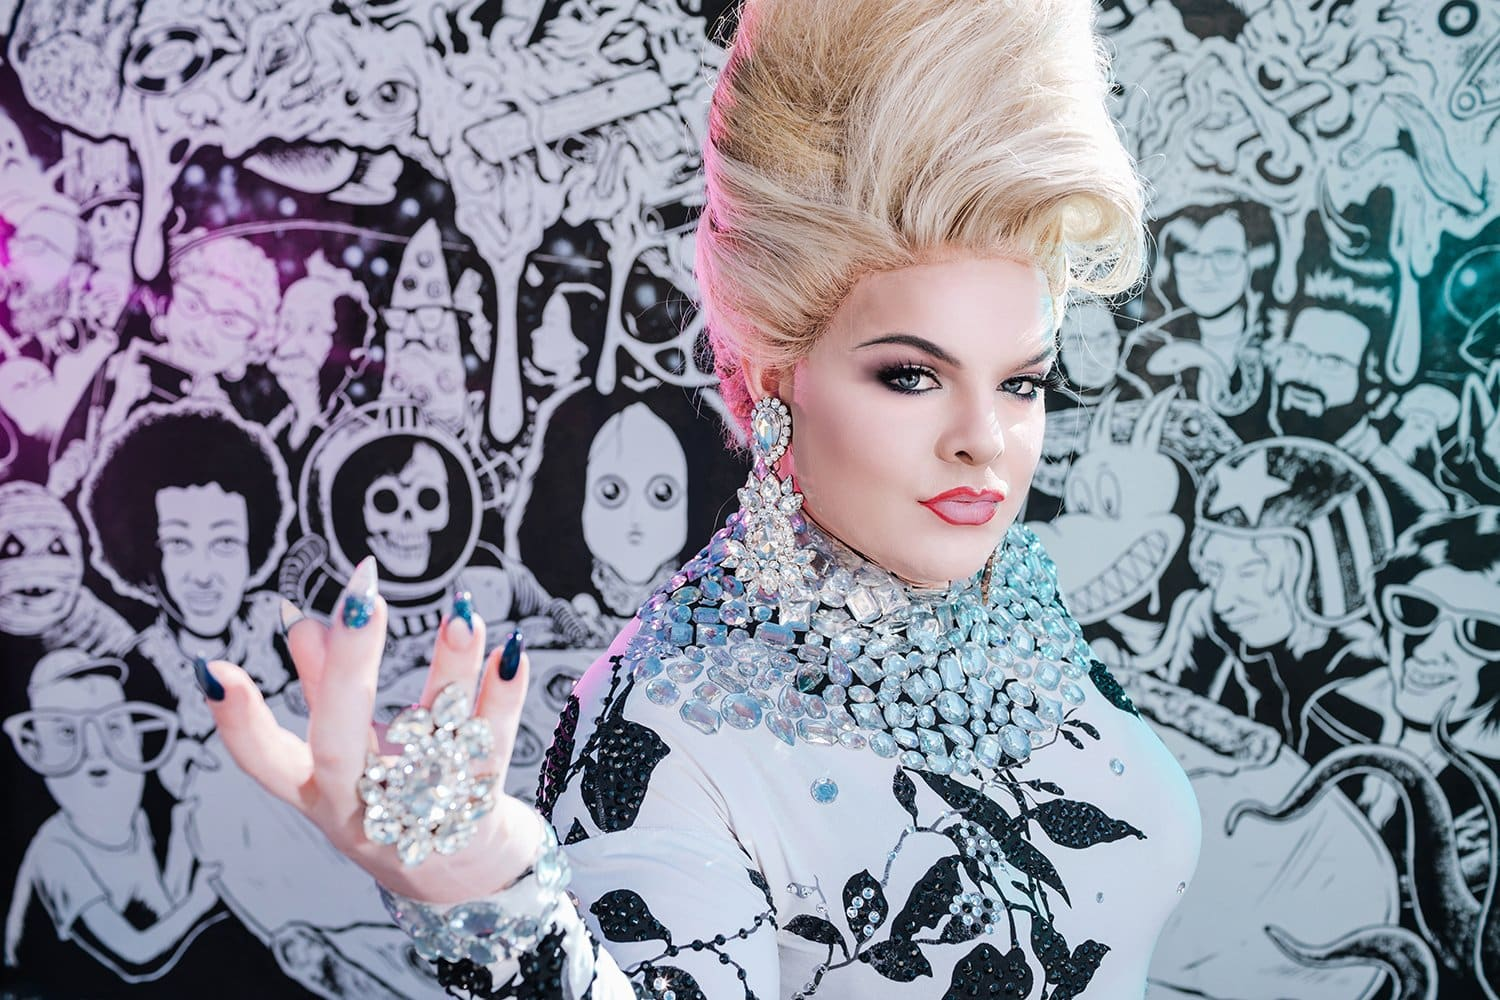 portrait photography drag queen wearing black and white dress and beehive hair on black and white mural background